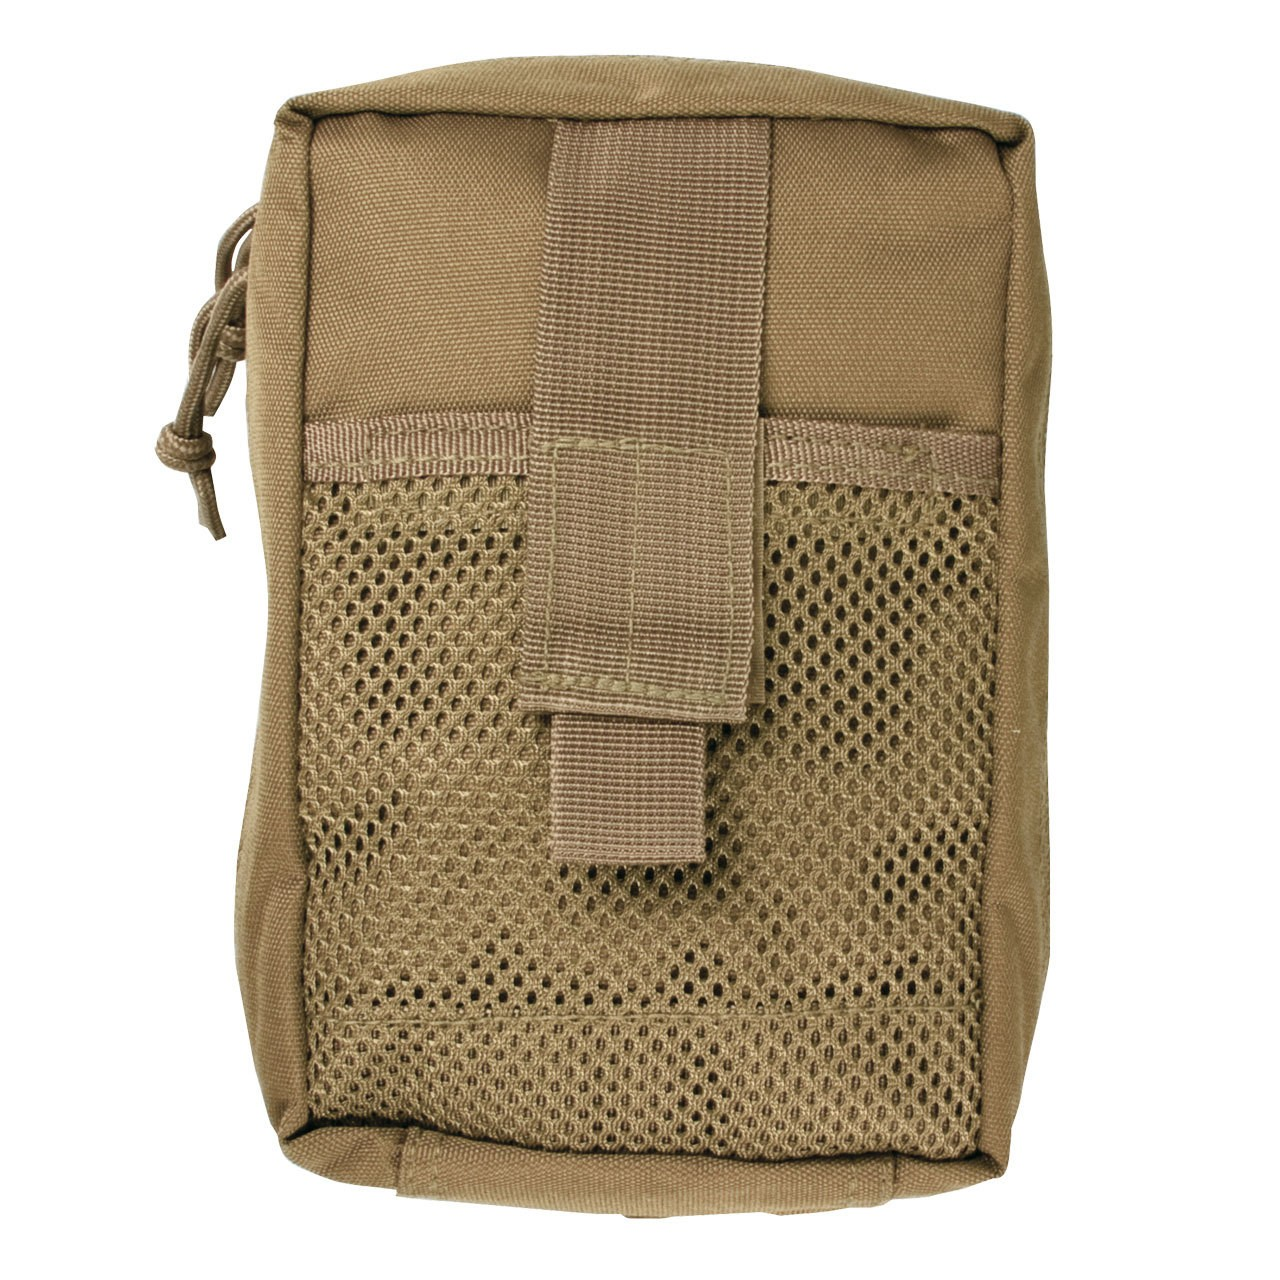 Red Rock Gear Tactical Trauma Kit